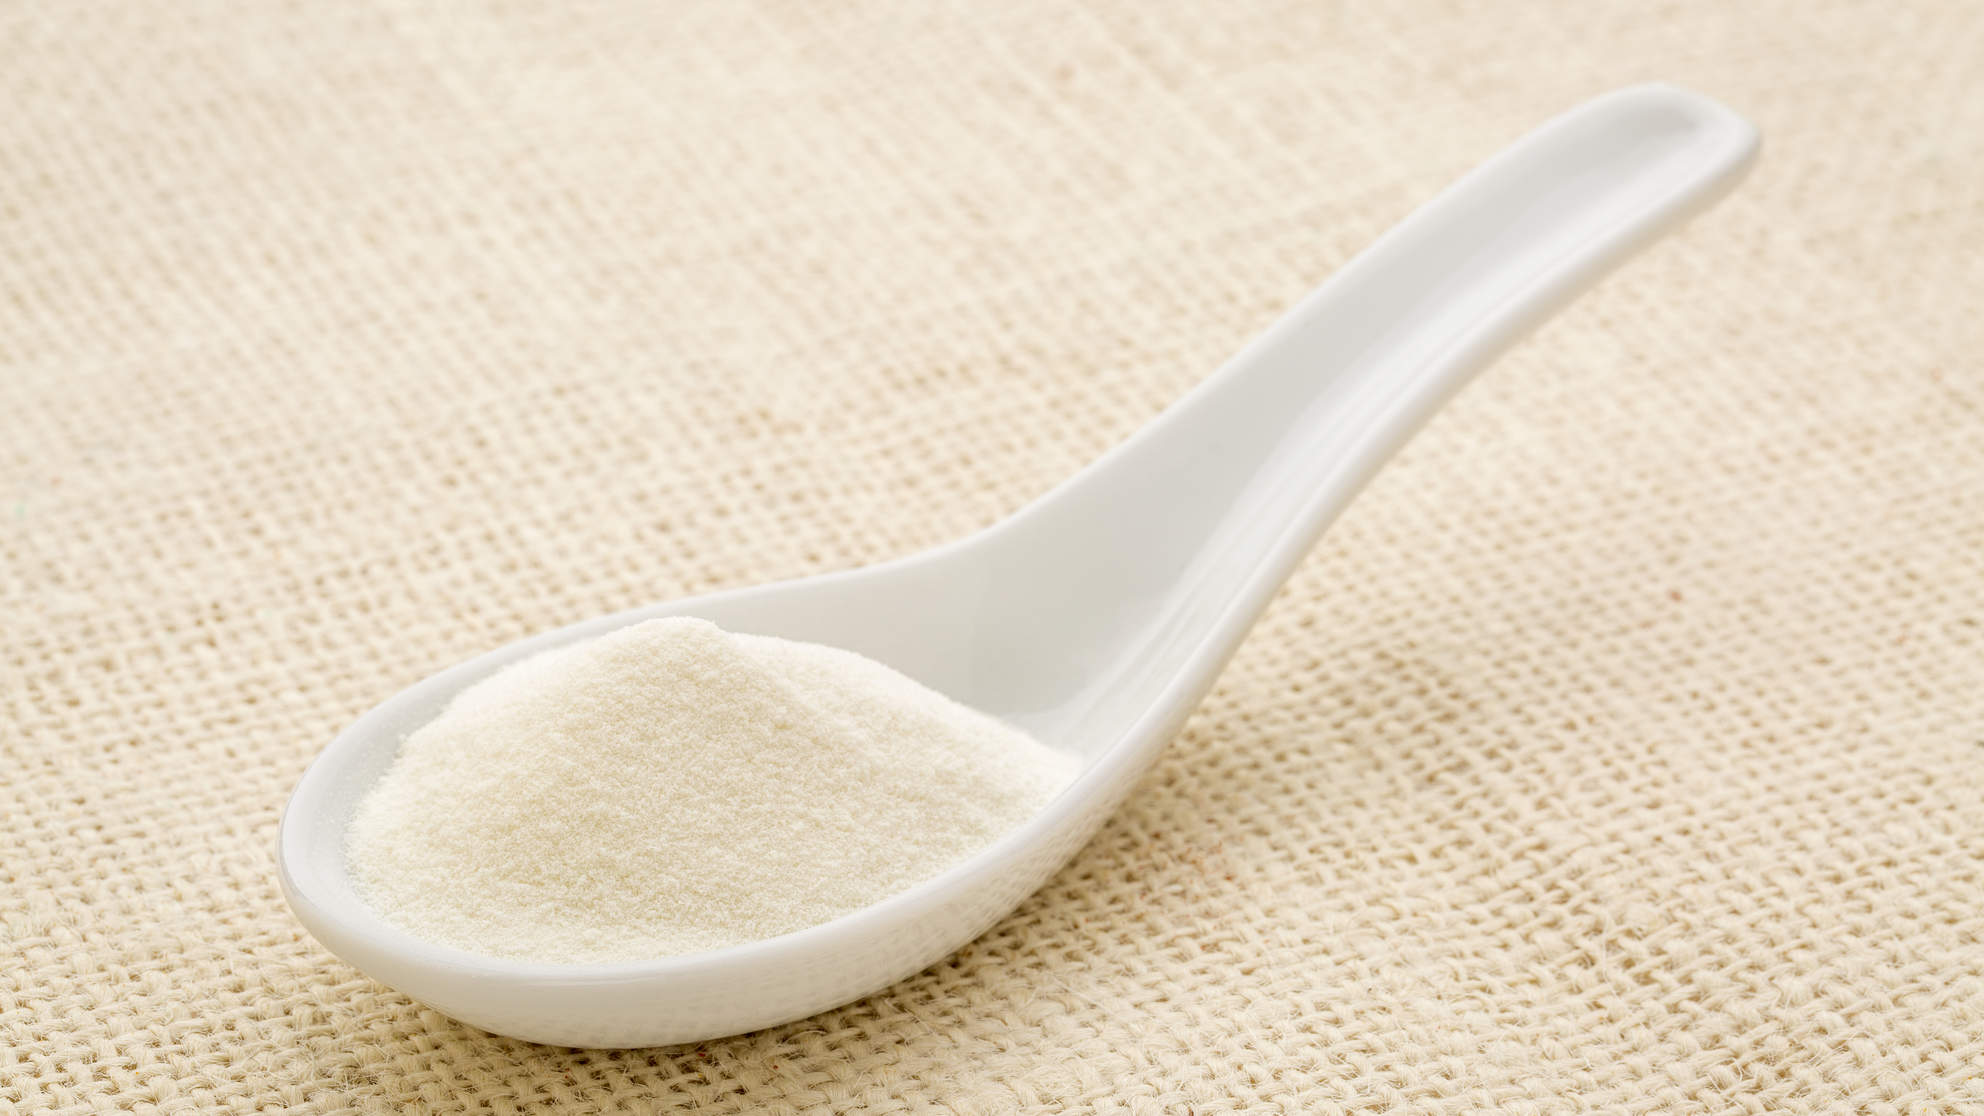 You Asked: Should I Eat Collagen Powder?